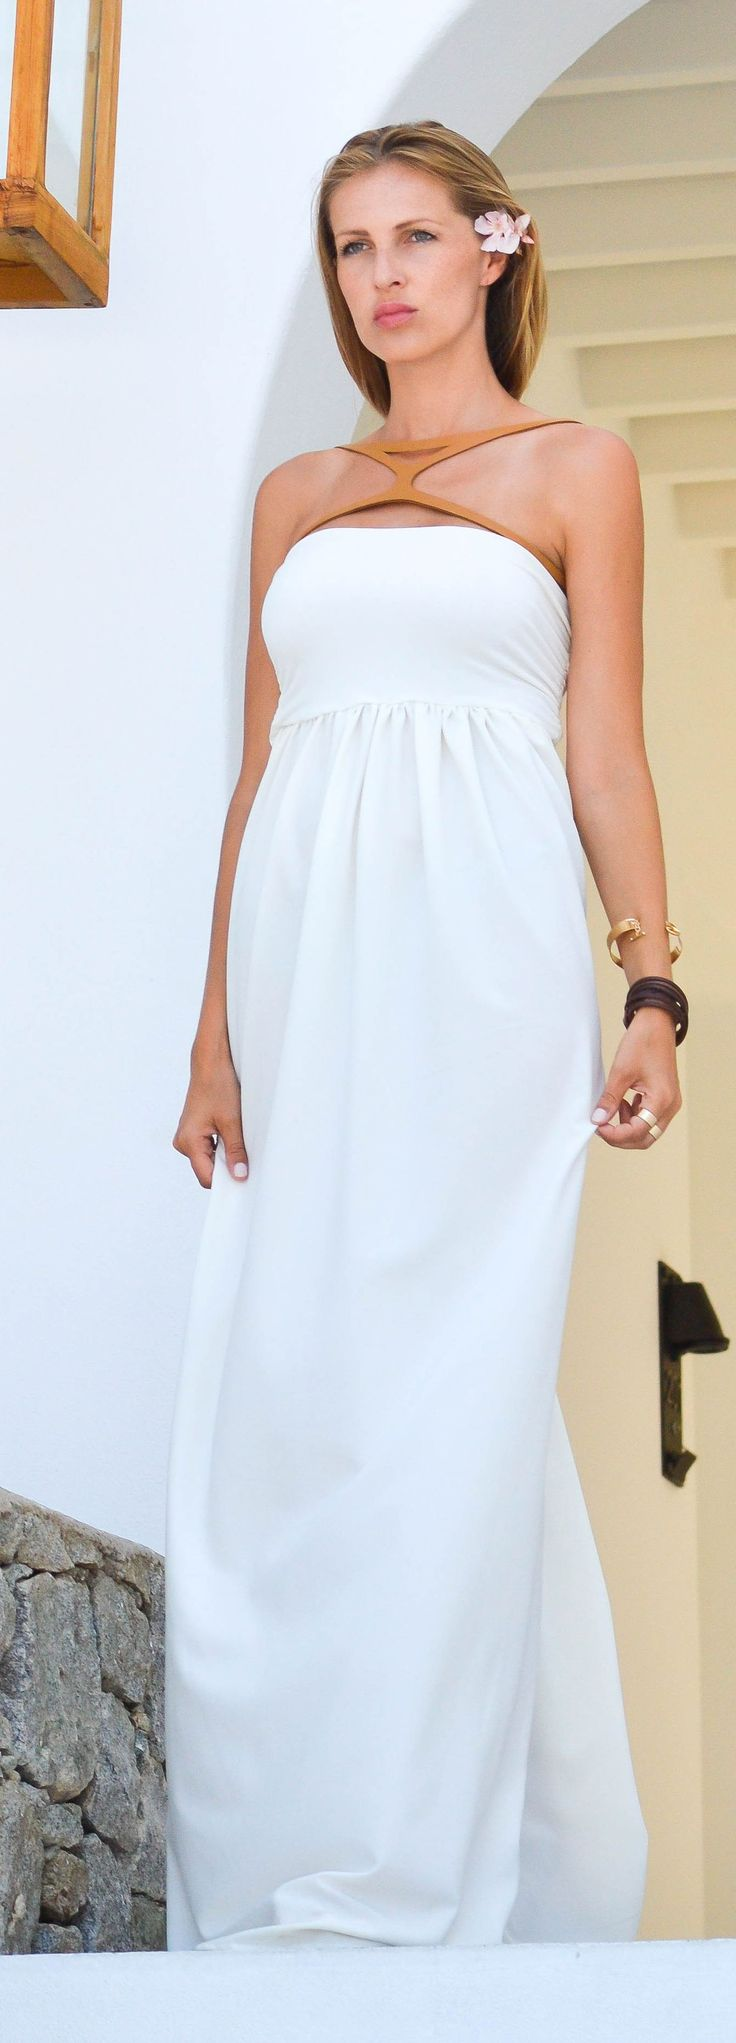 White And Camel Maxi Dress #Fashionistas